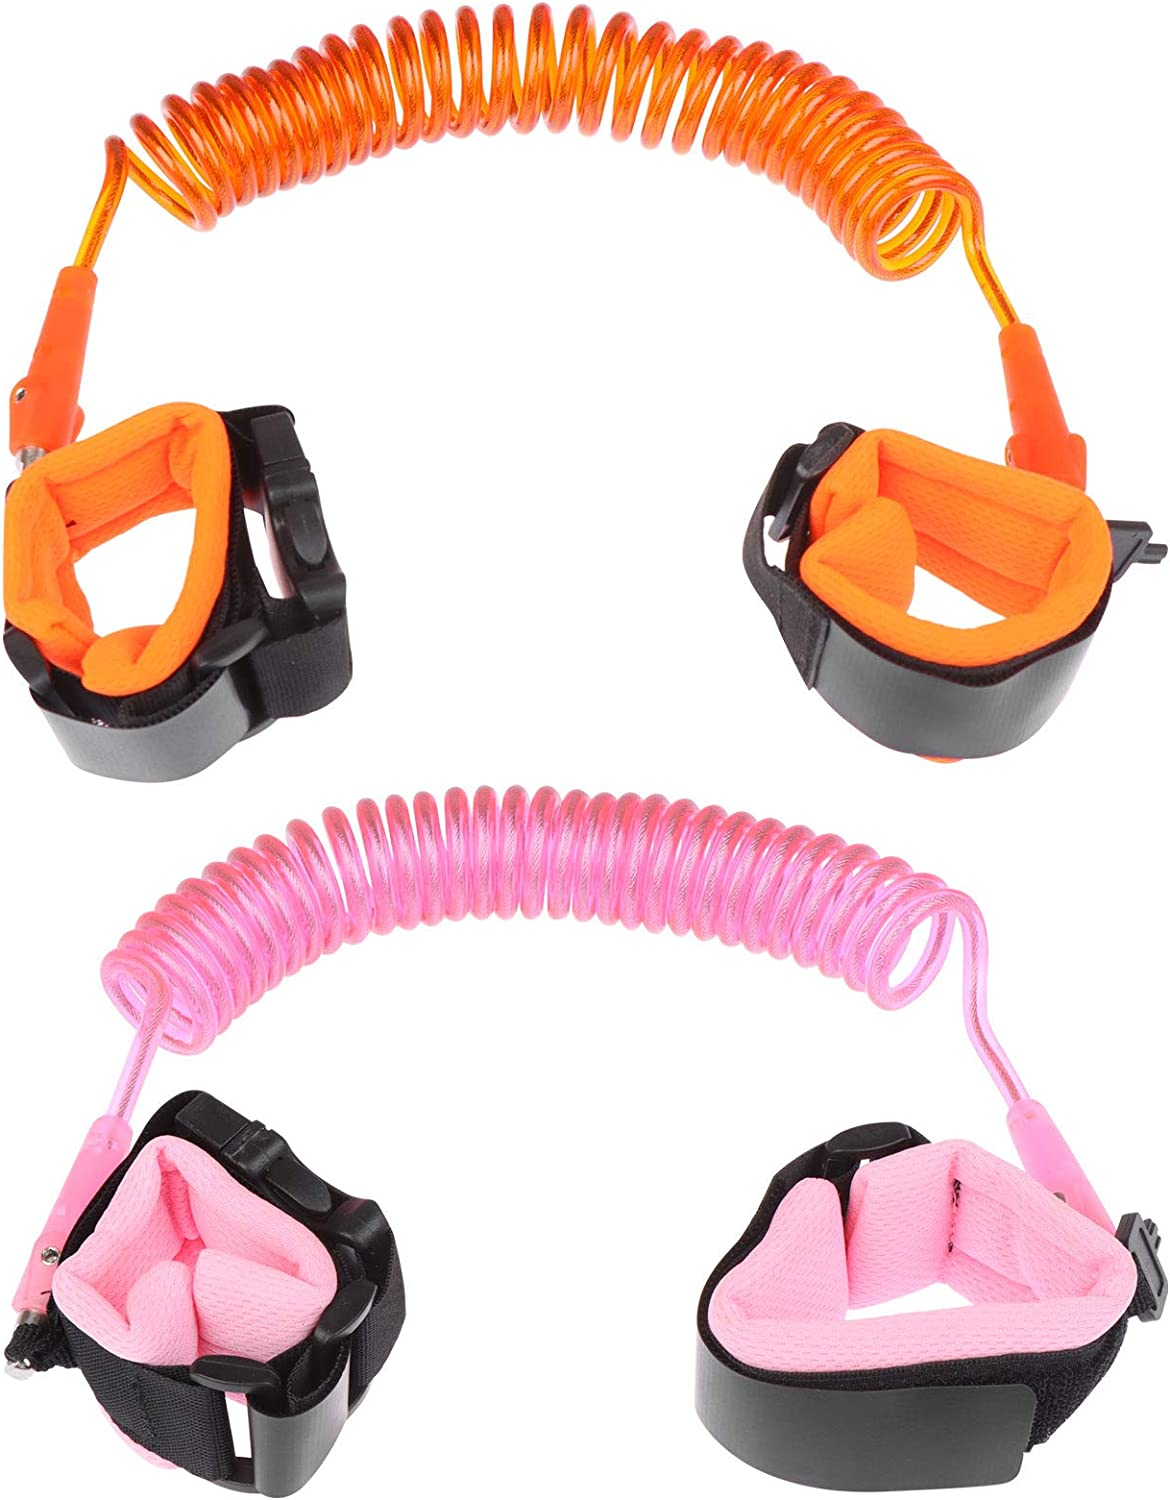 Haodeba 2 Pcs Anti-Lost Wristband, 8.2ft Wrist Link for Toddler, Anti-Lost Rope Belt